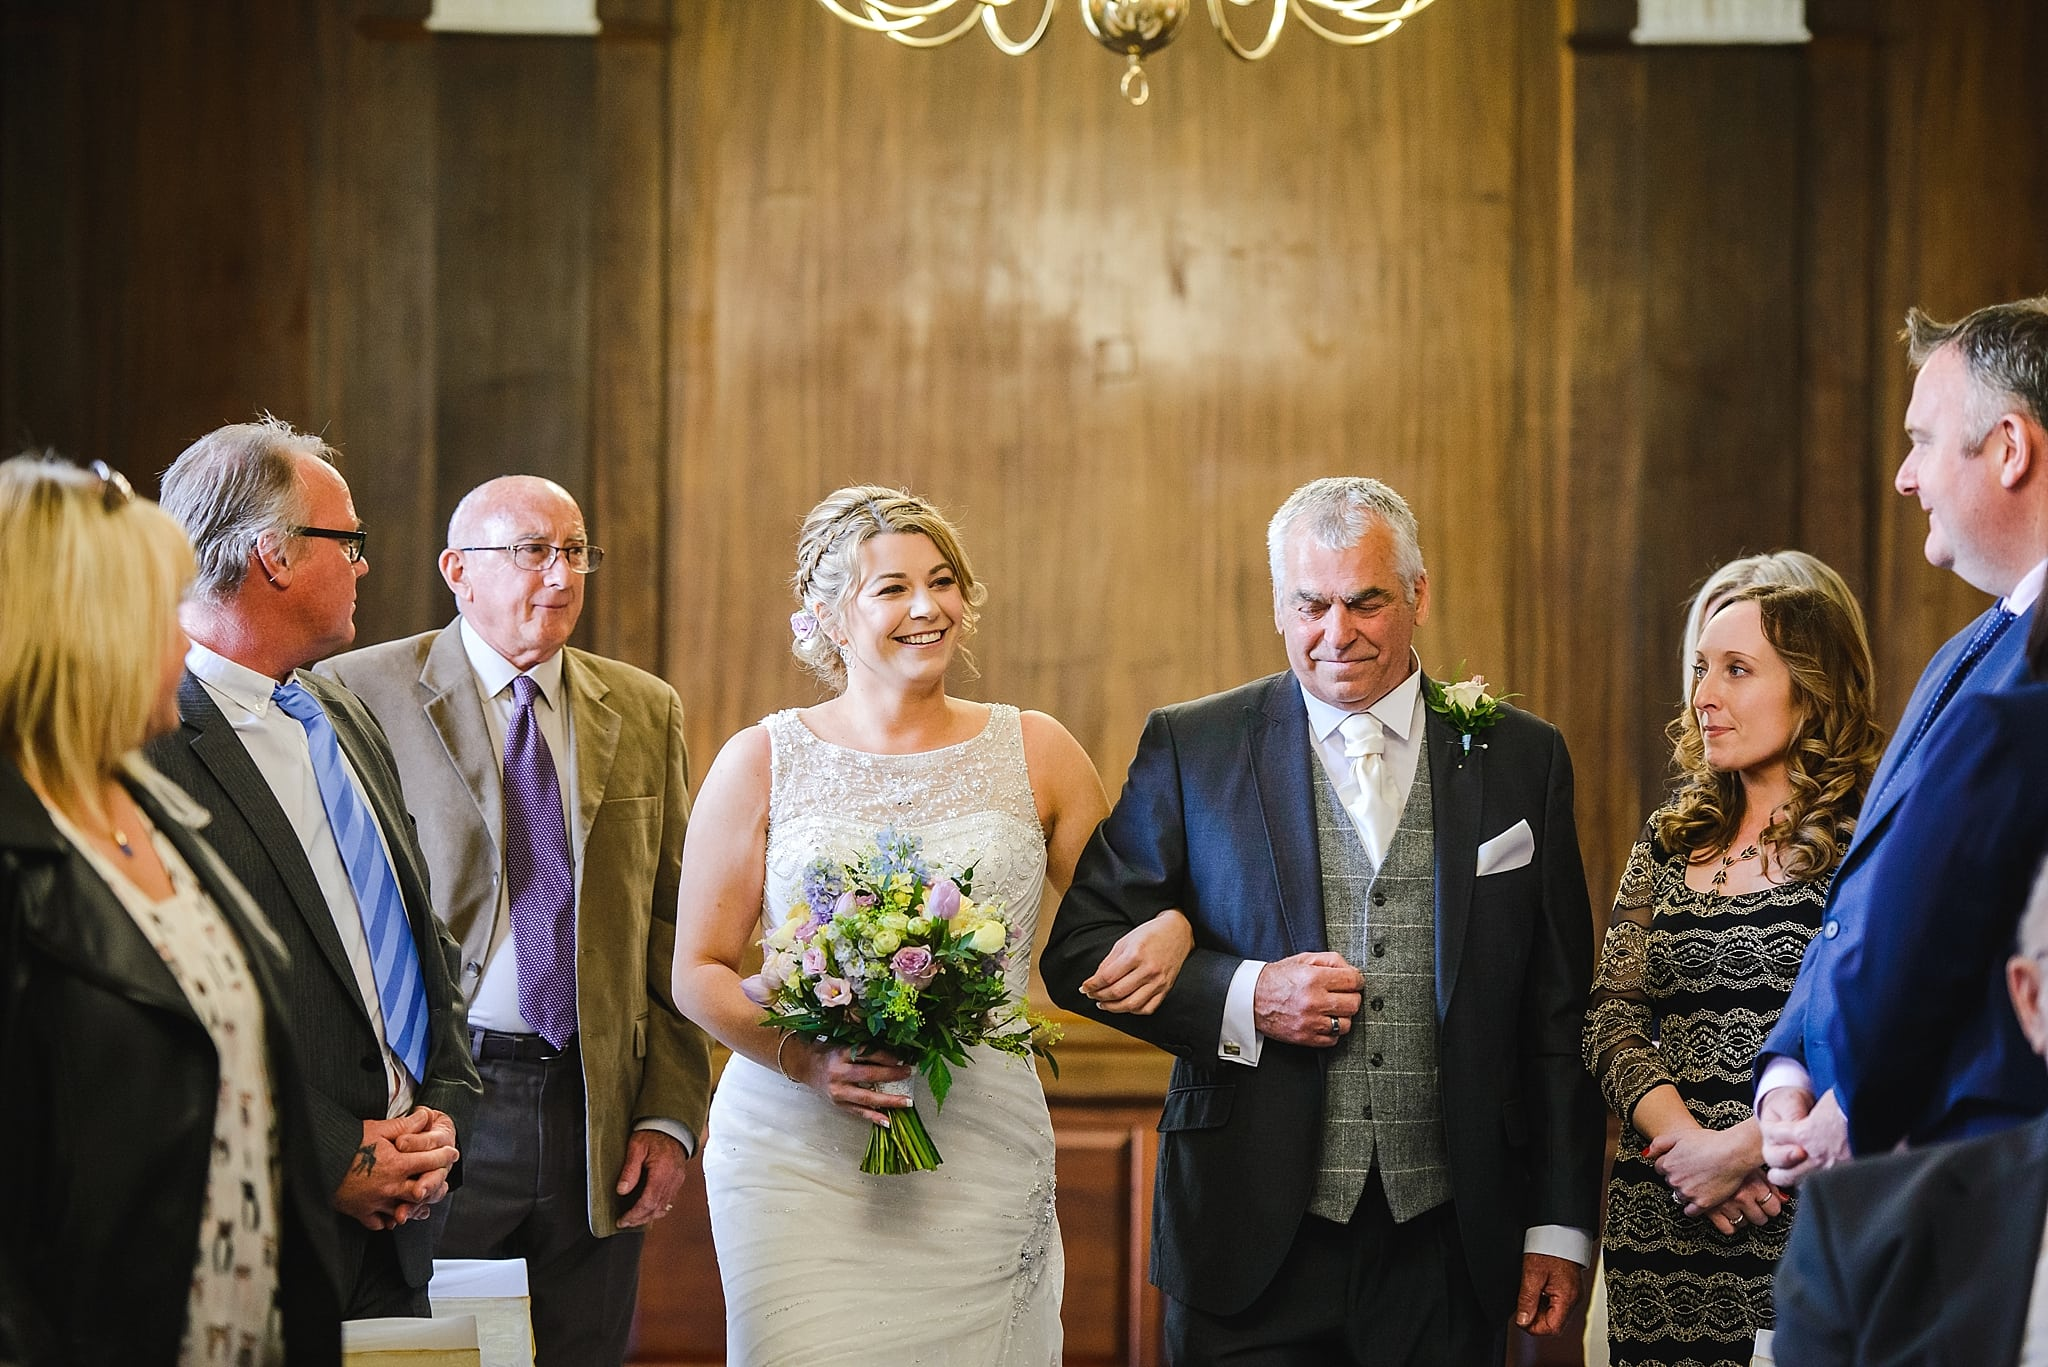 Bride walking arm in arm with her father down the aisle at Trowbridge registry office